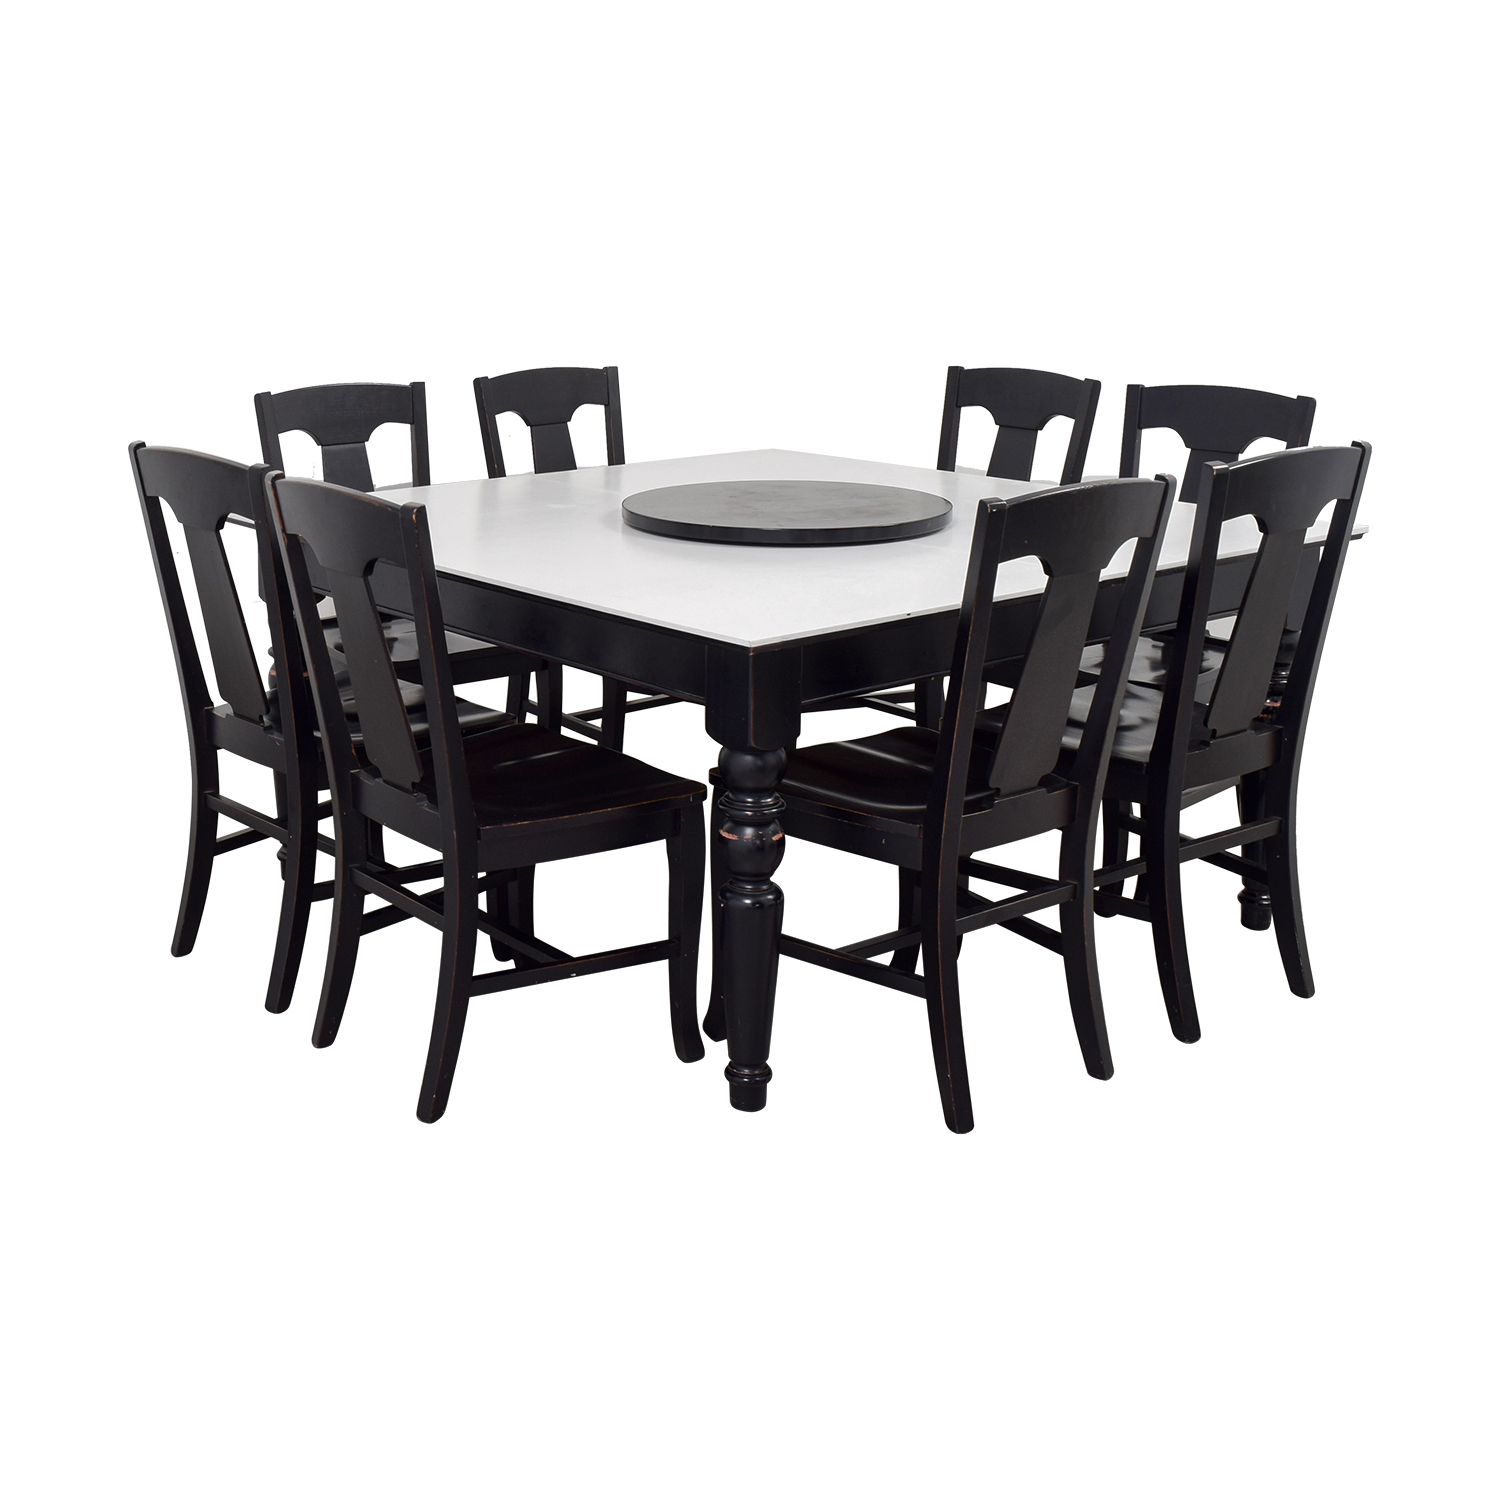 Pottery Barn Pottery Barn White and Black Extendable Dining Set with Lazy Susan